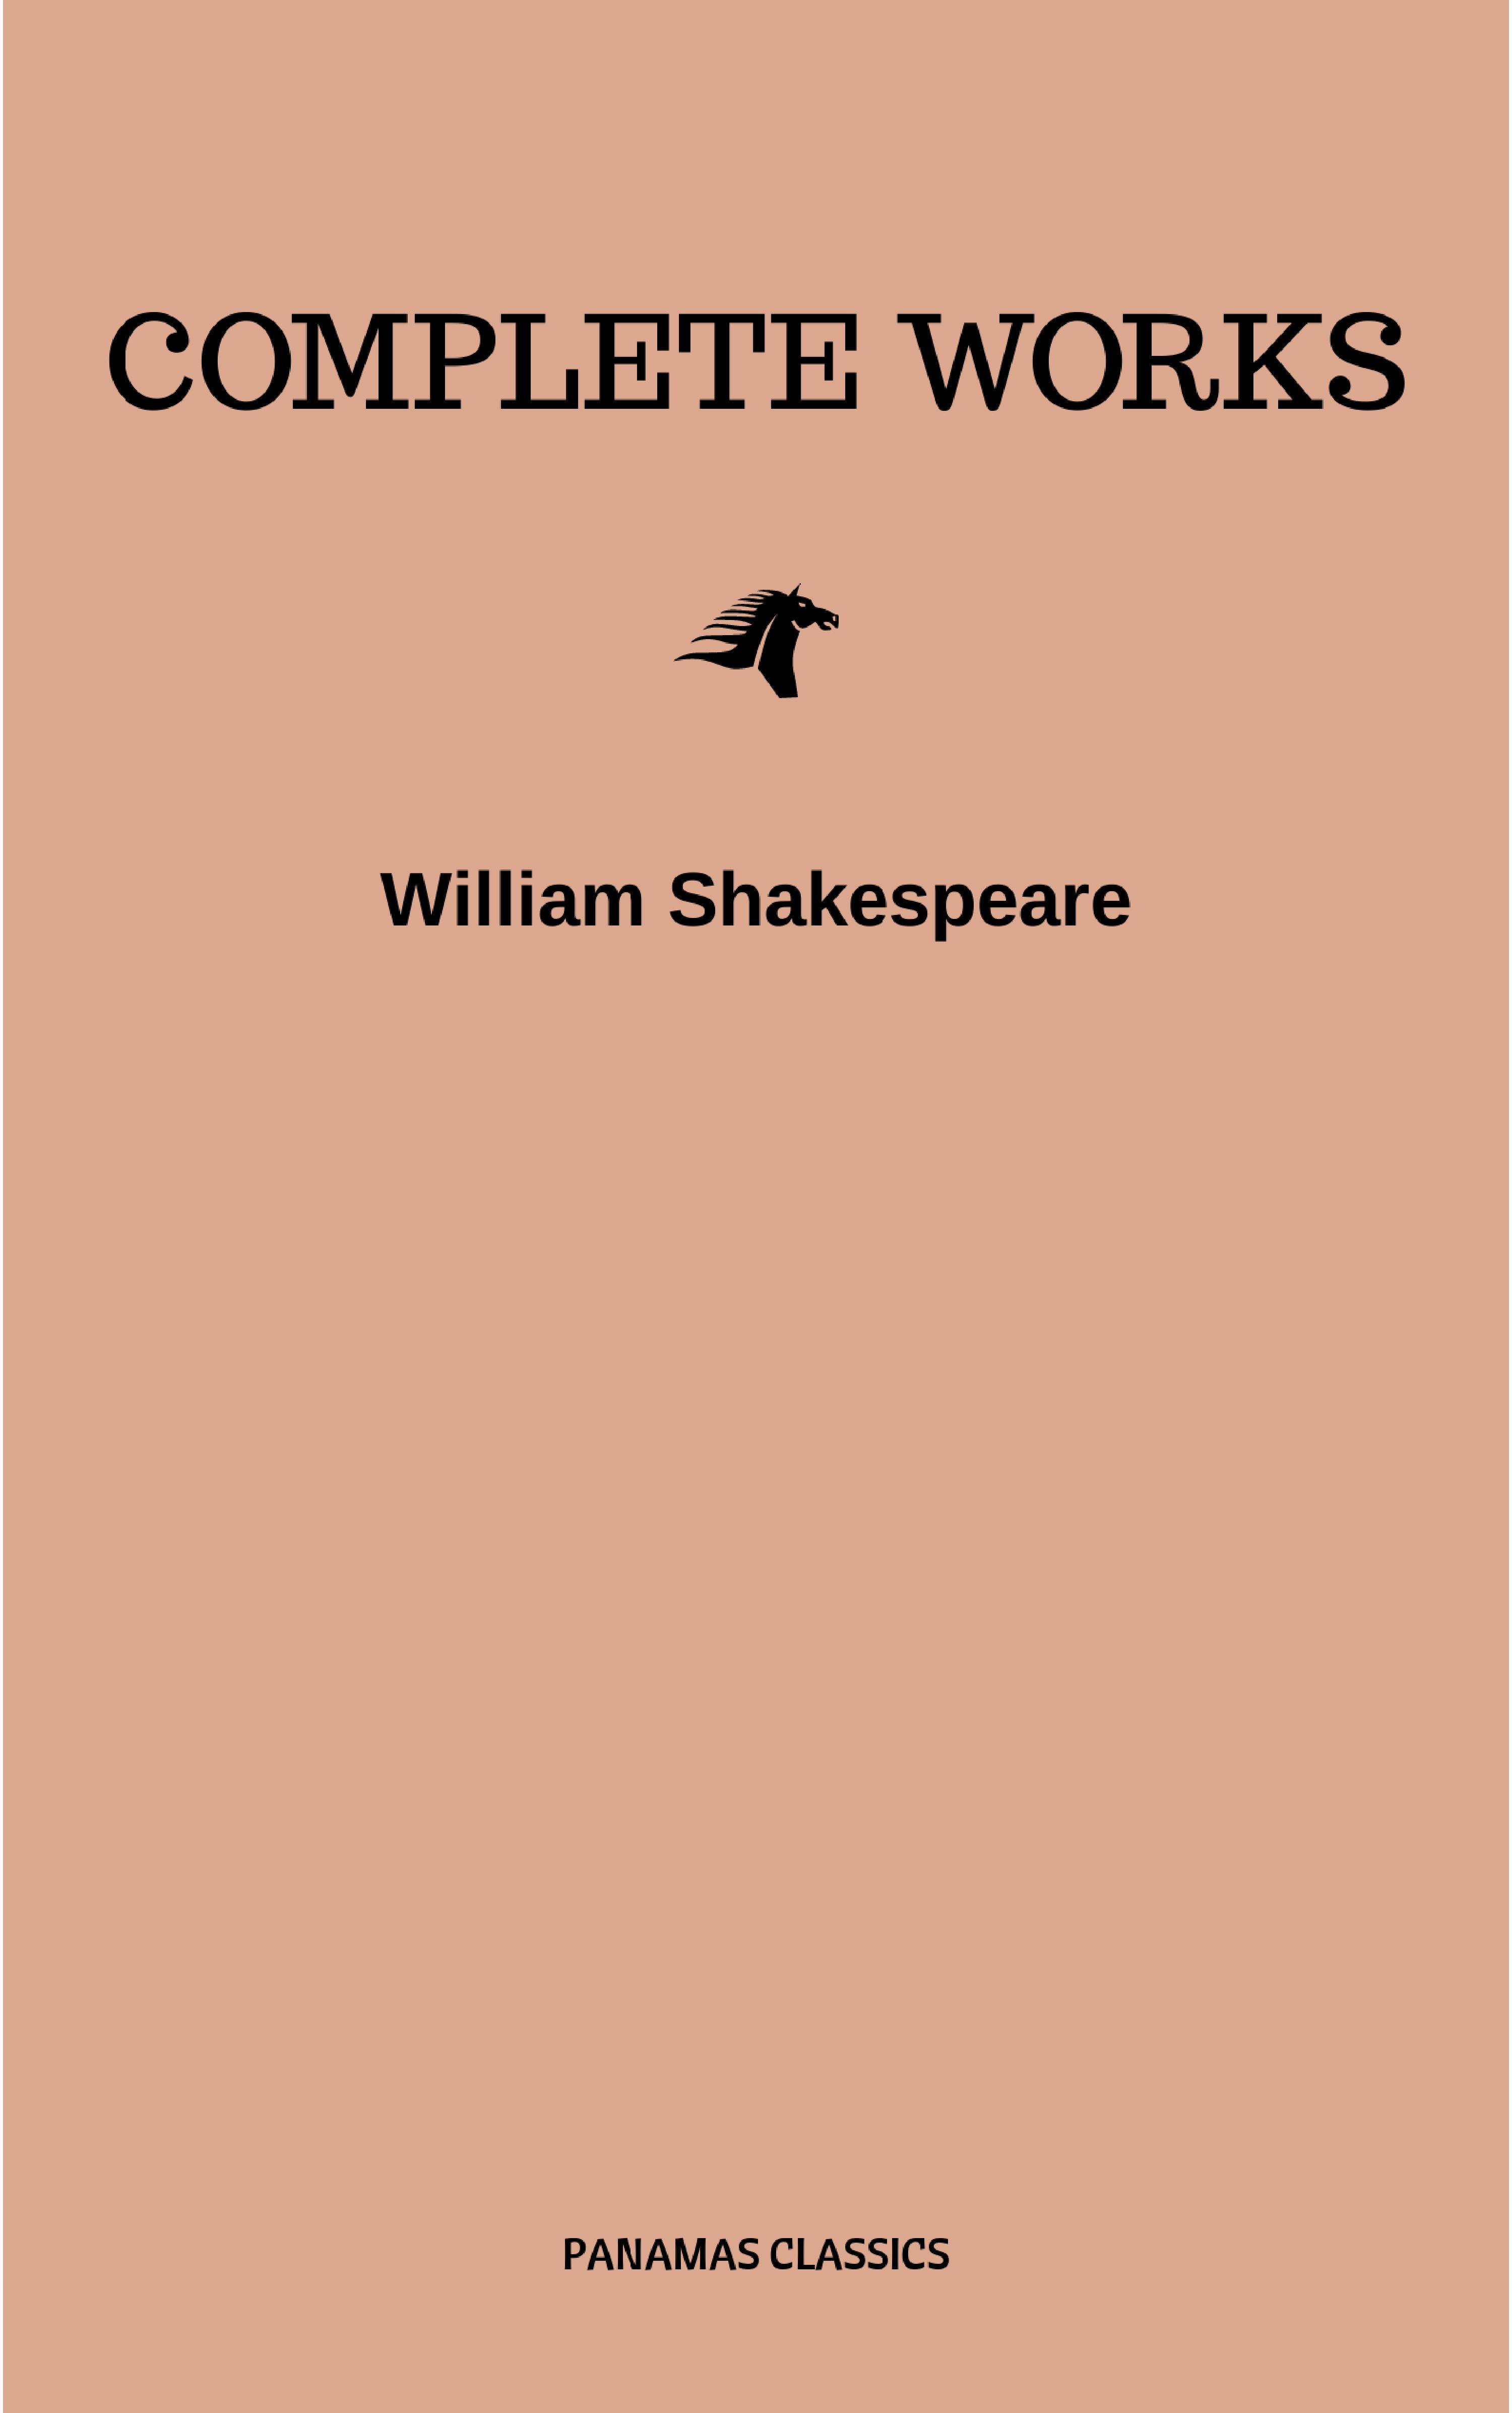 William Shakespeare The Complete Works of William Shakespeare